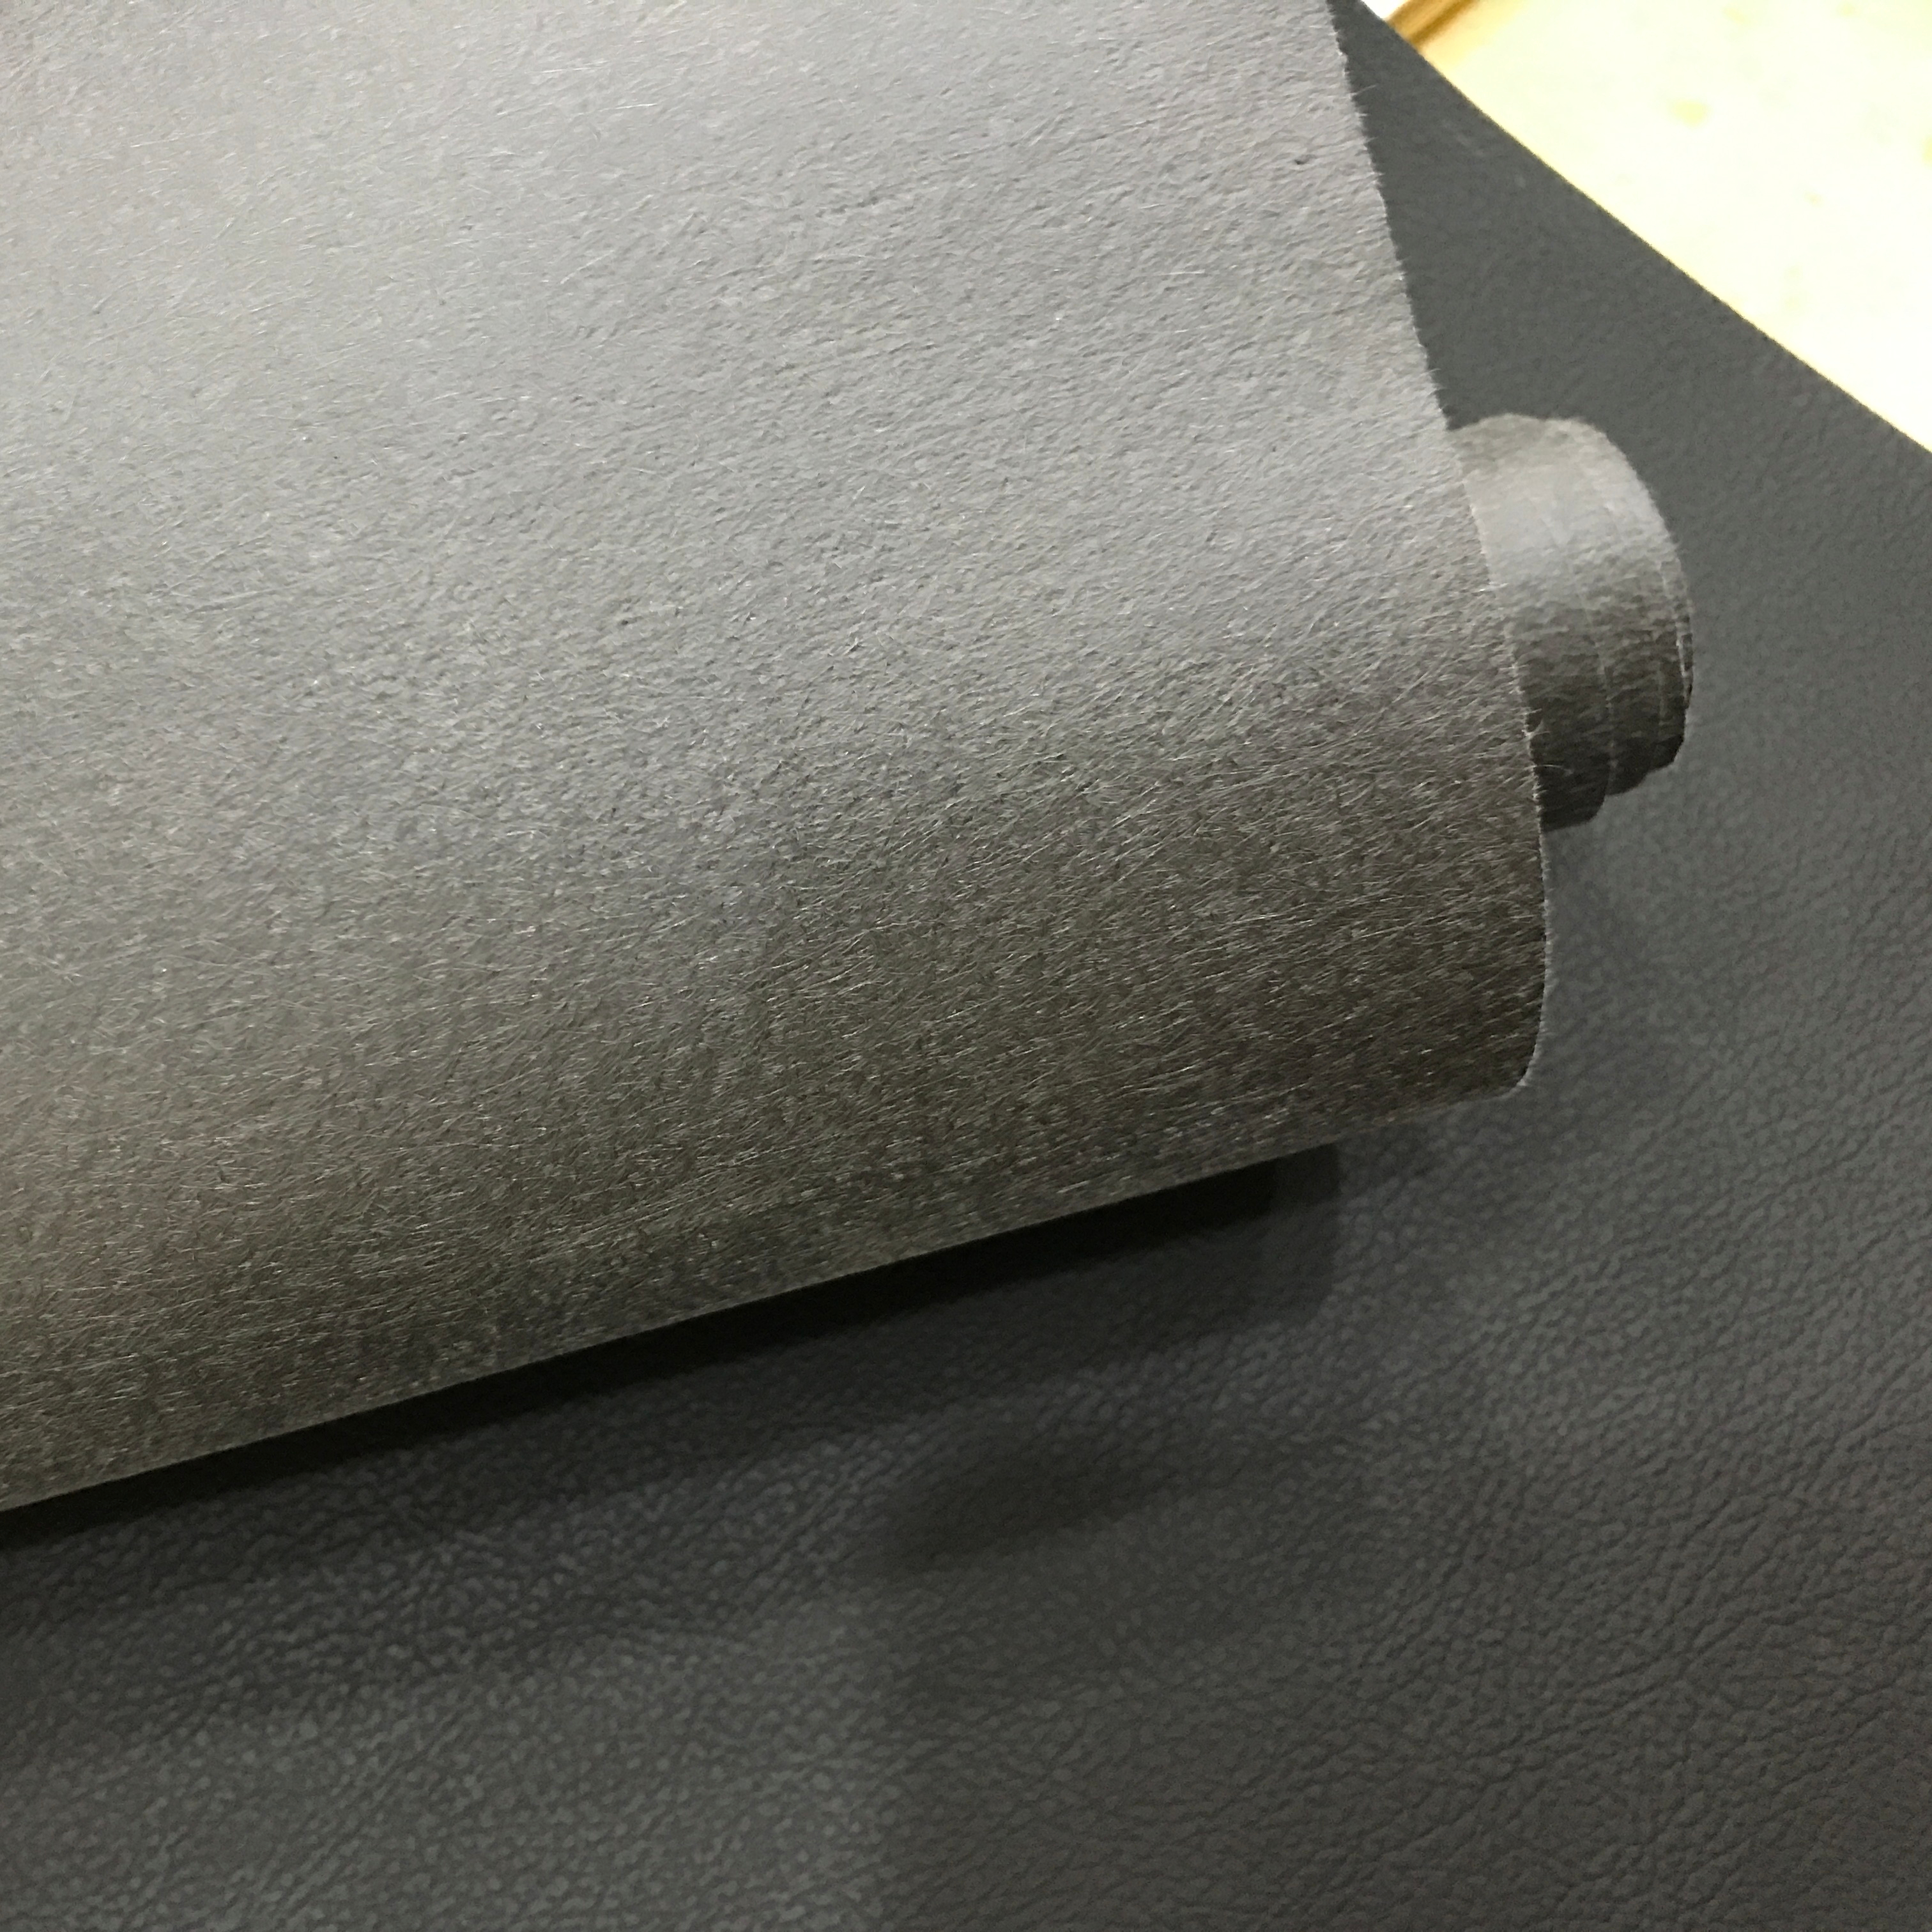 0.5mm Artificial PU /pvc <strong>leather</strong> for Mobile phone case, photo album packaging, tablet computer use